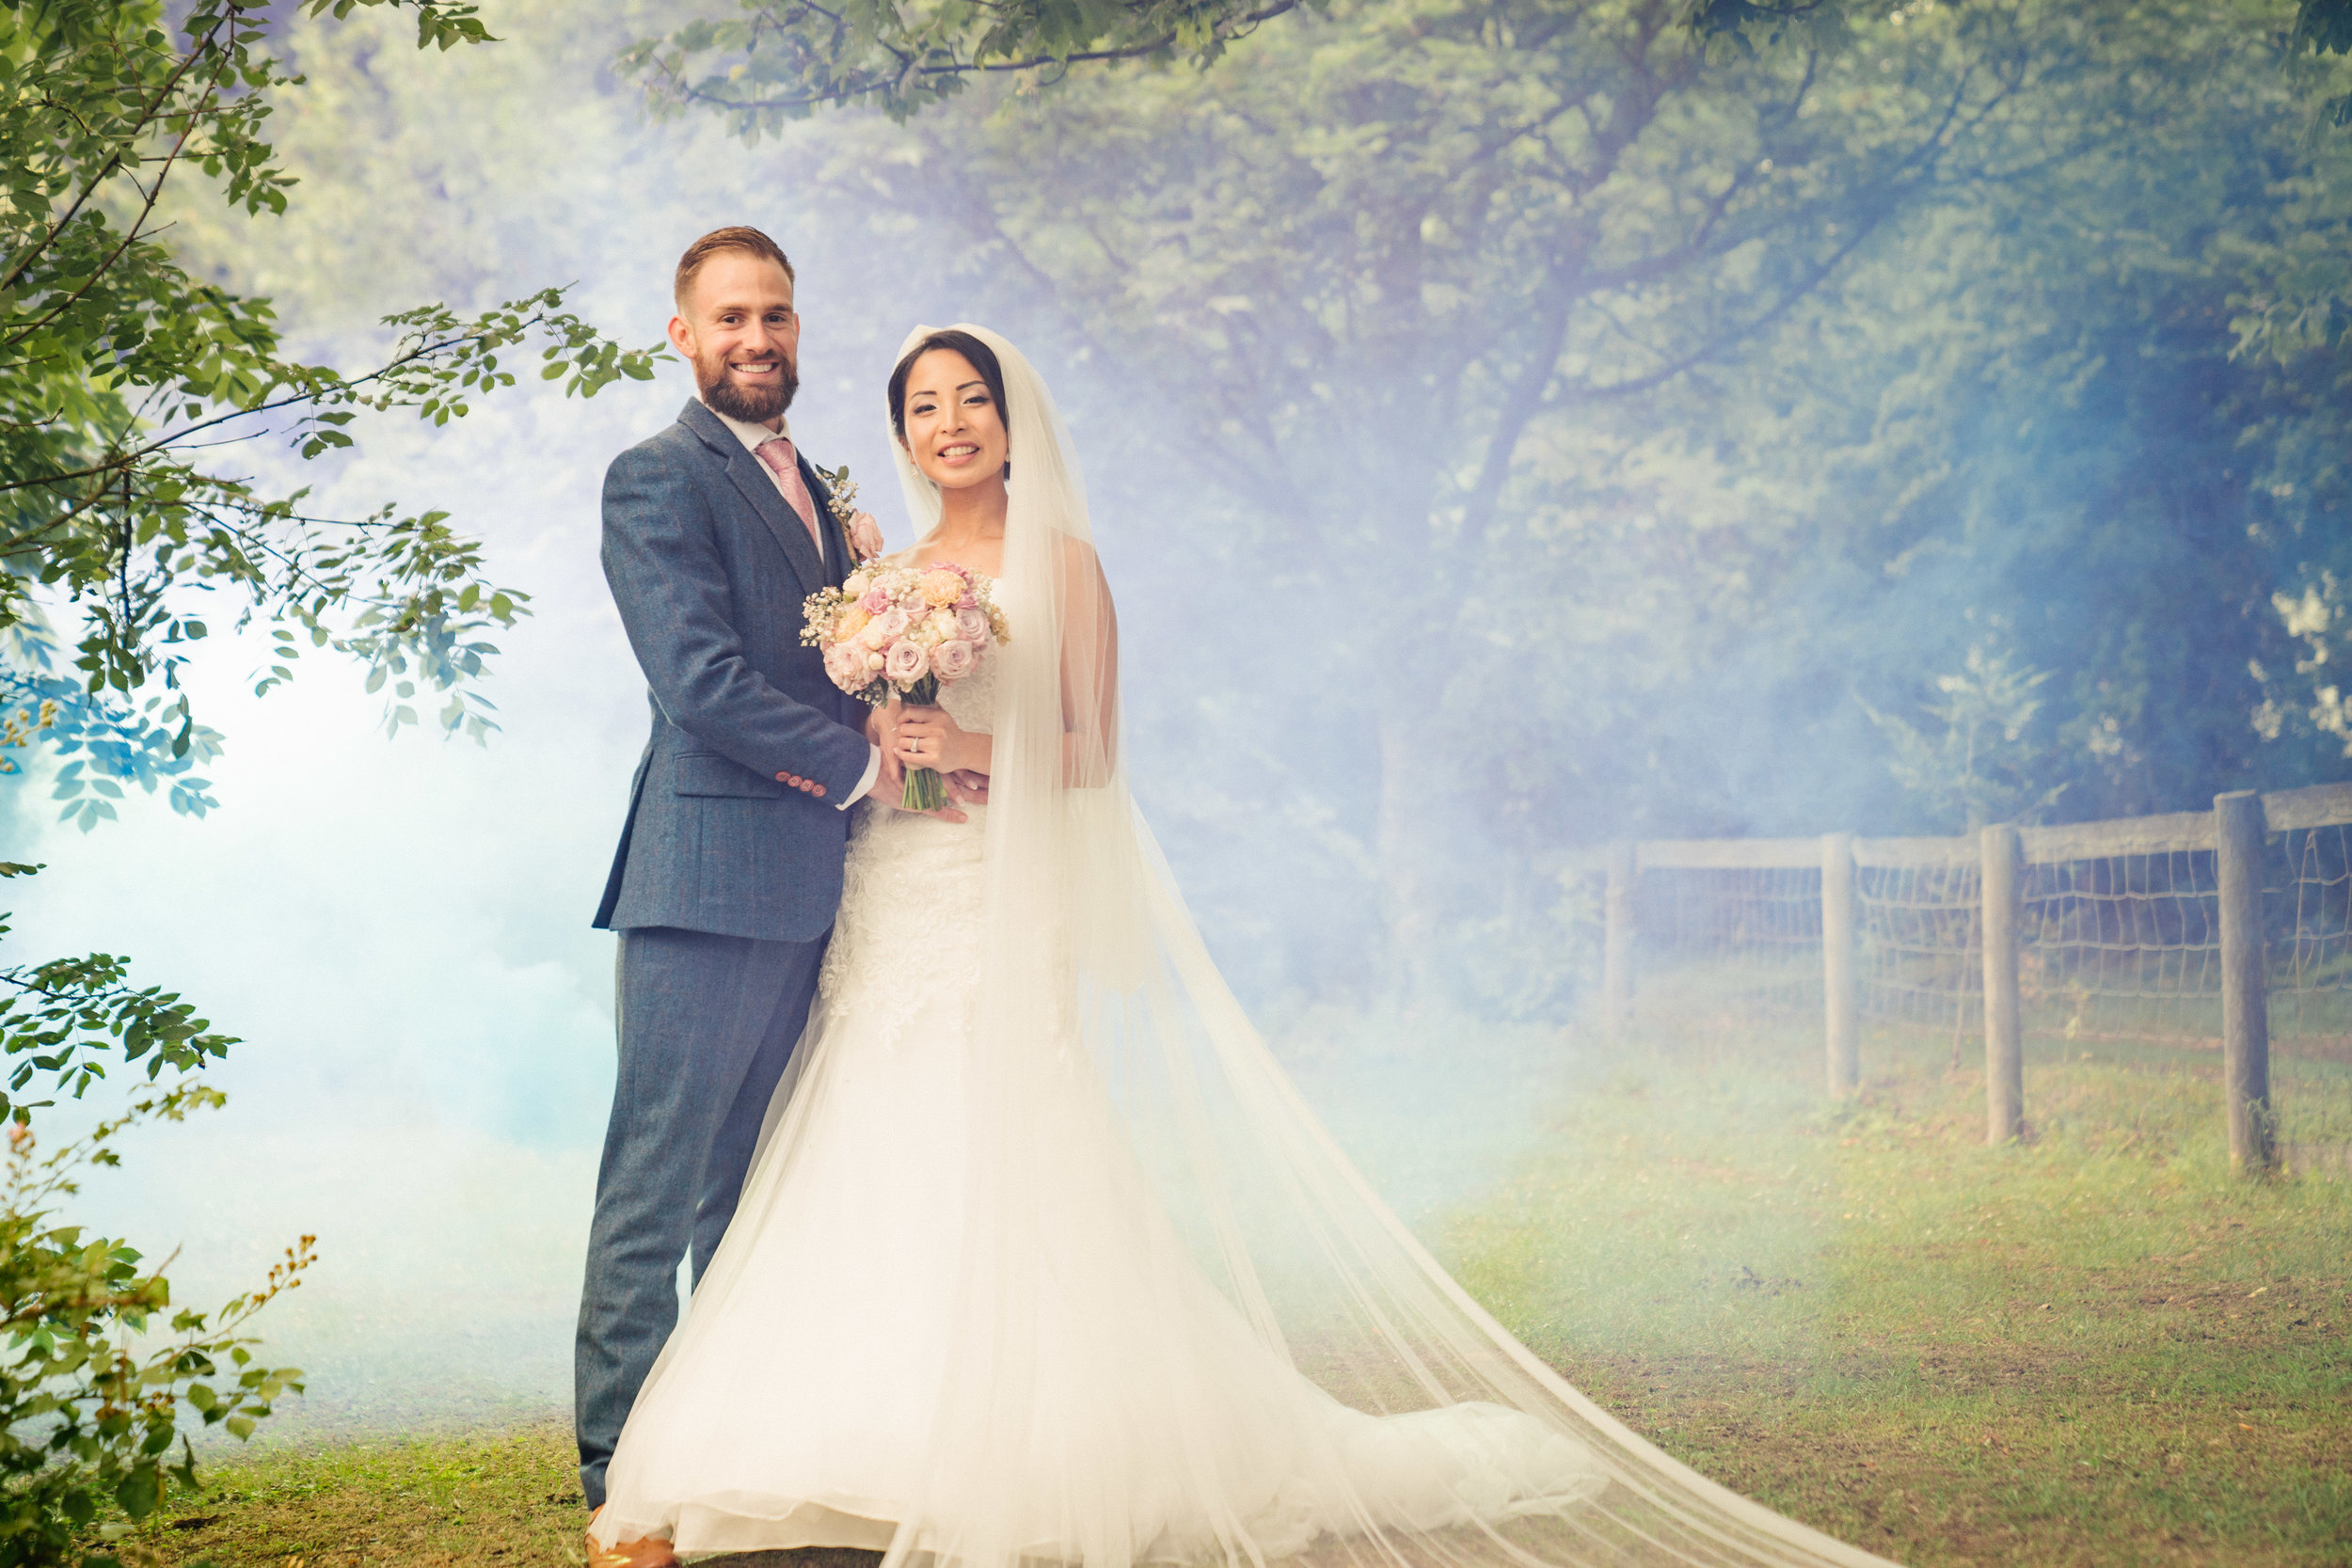 bedfordshire-london-wedding-photographer-videographer-405